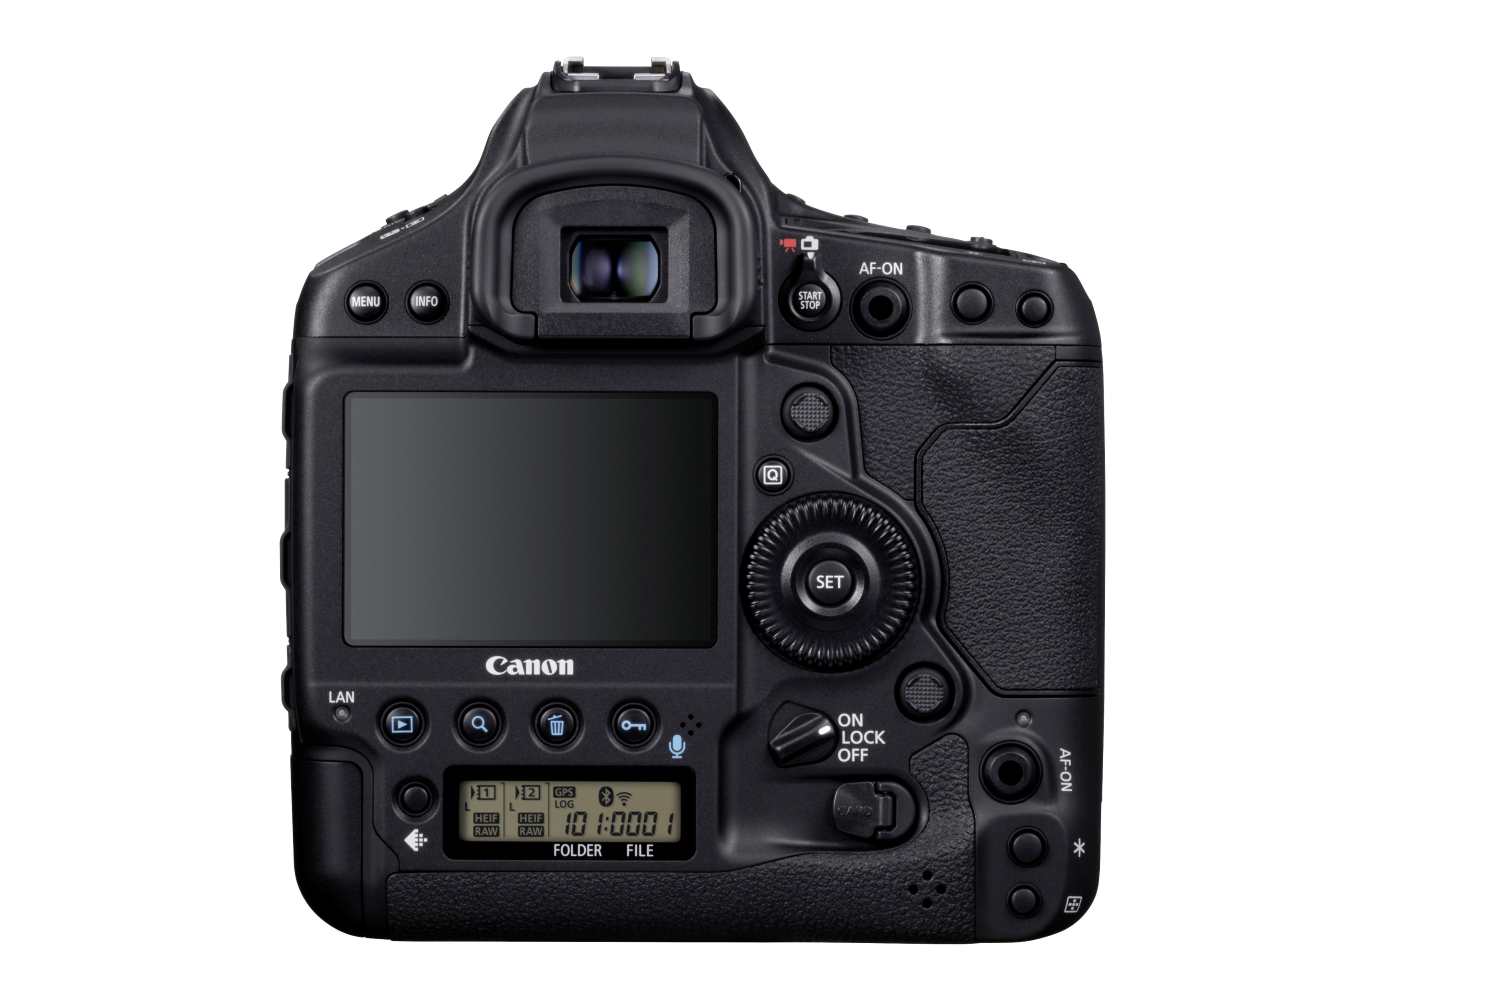 The Canon 1D X Mark III Is Officially Announced, With 20 FPS and a New Processor